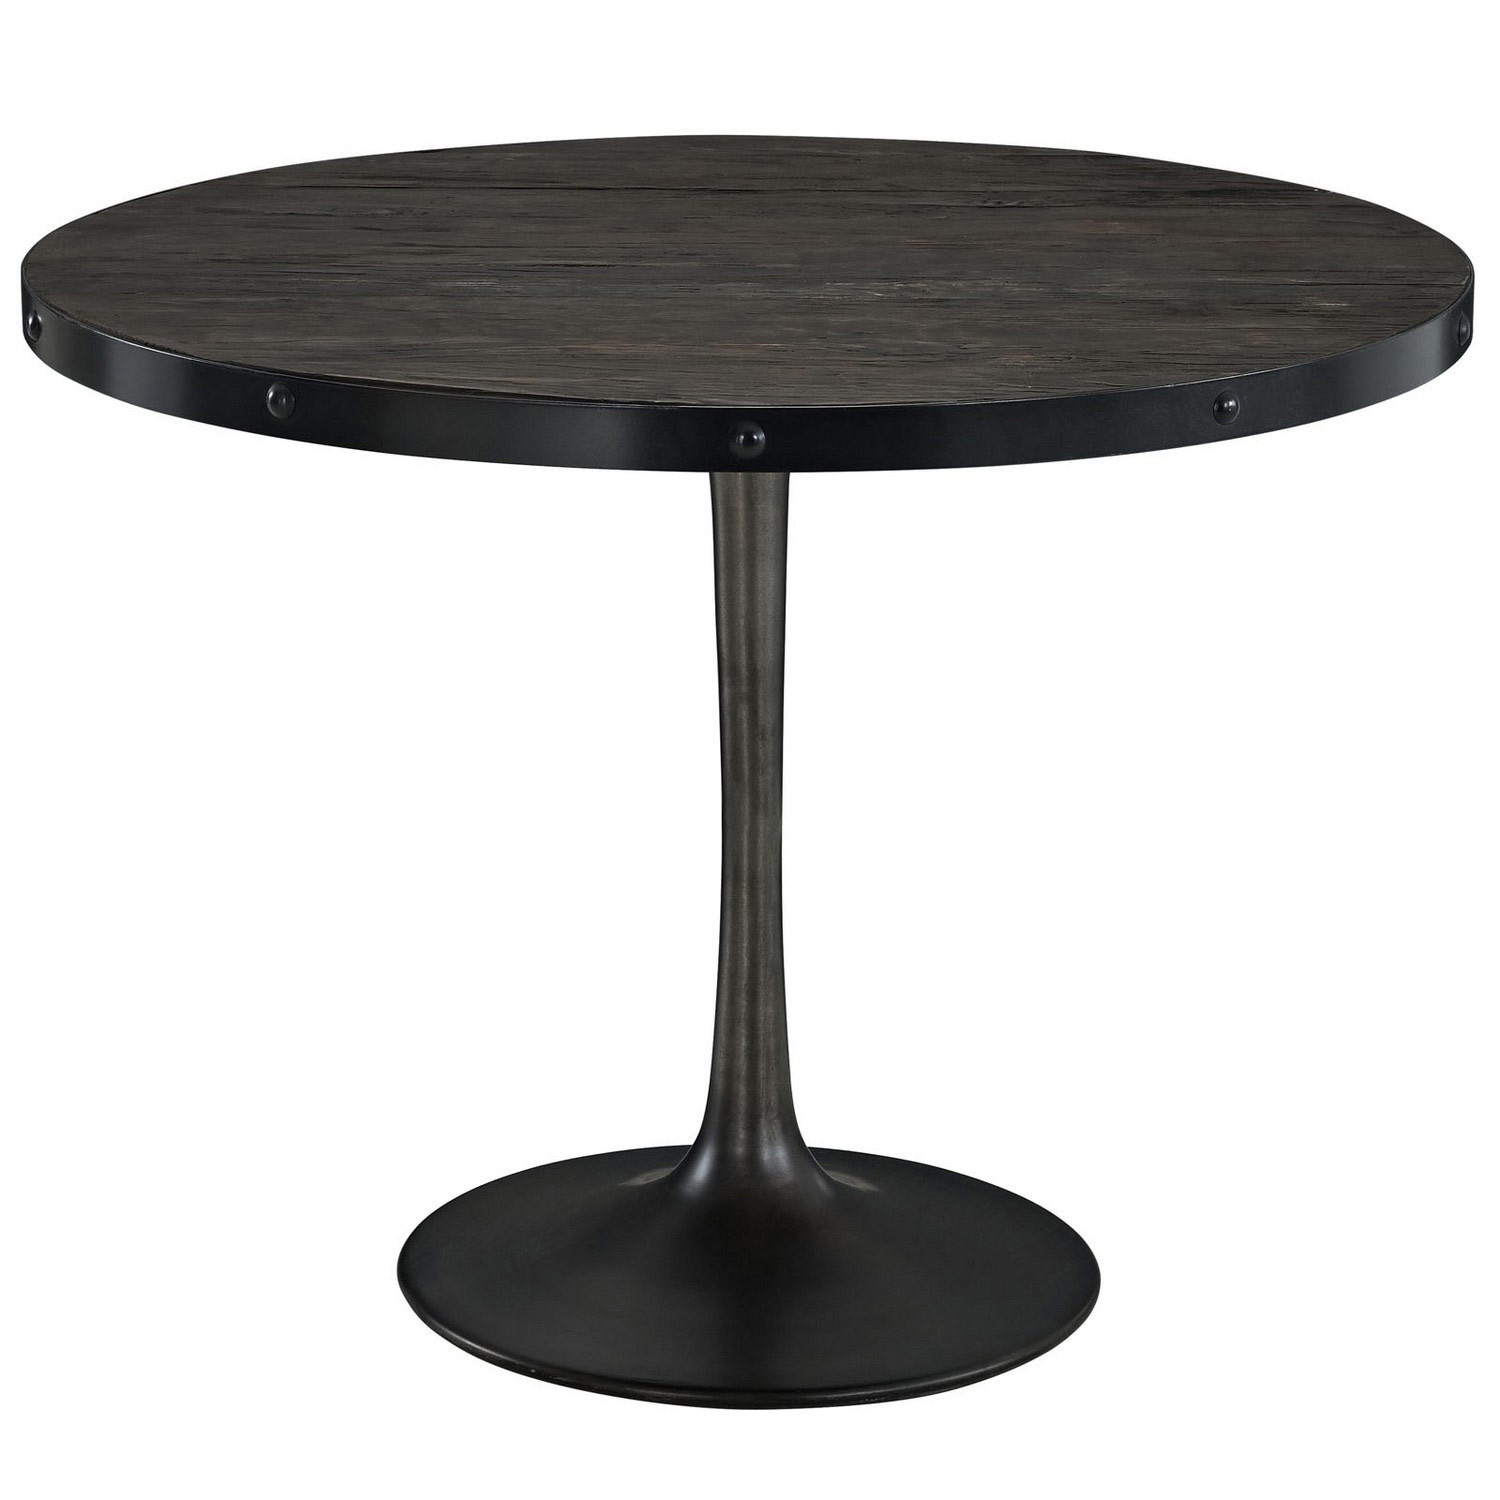 Modway Drive Wood Top Dining Table - Black